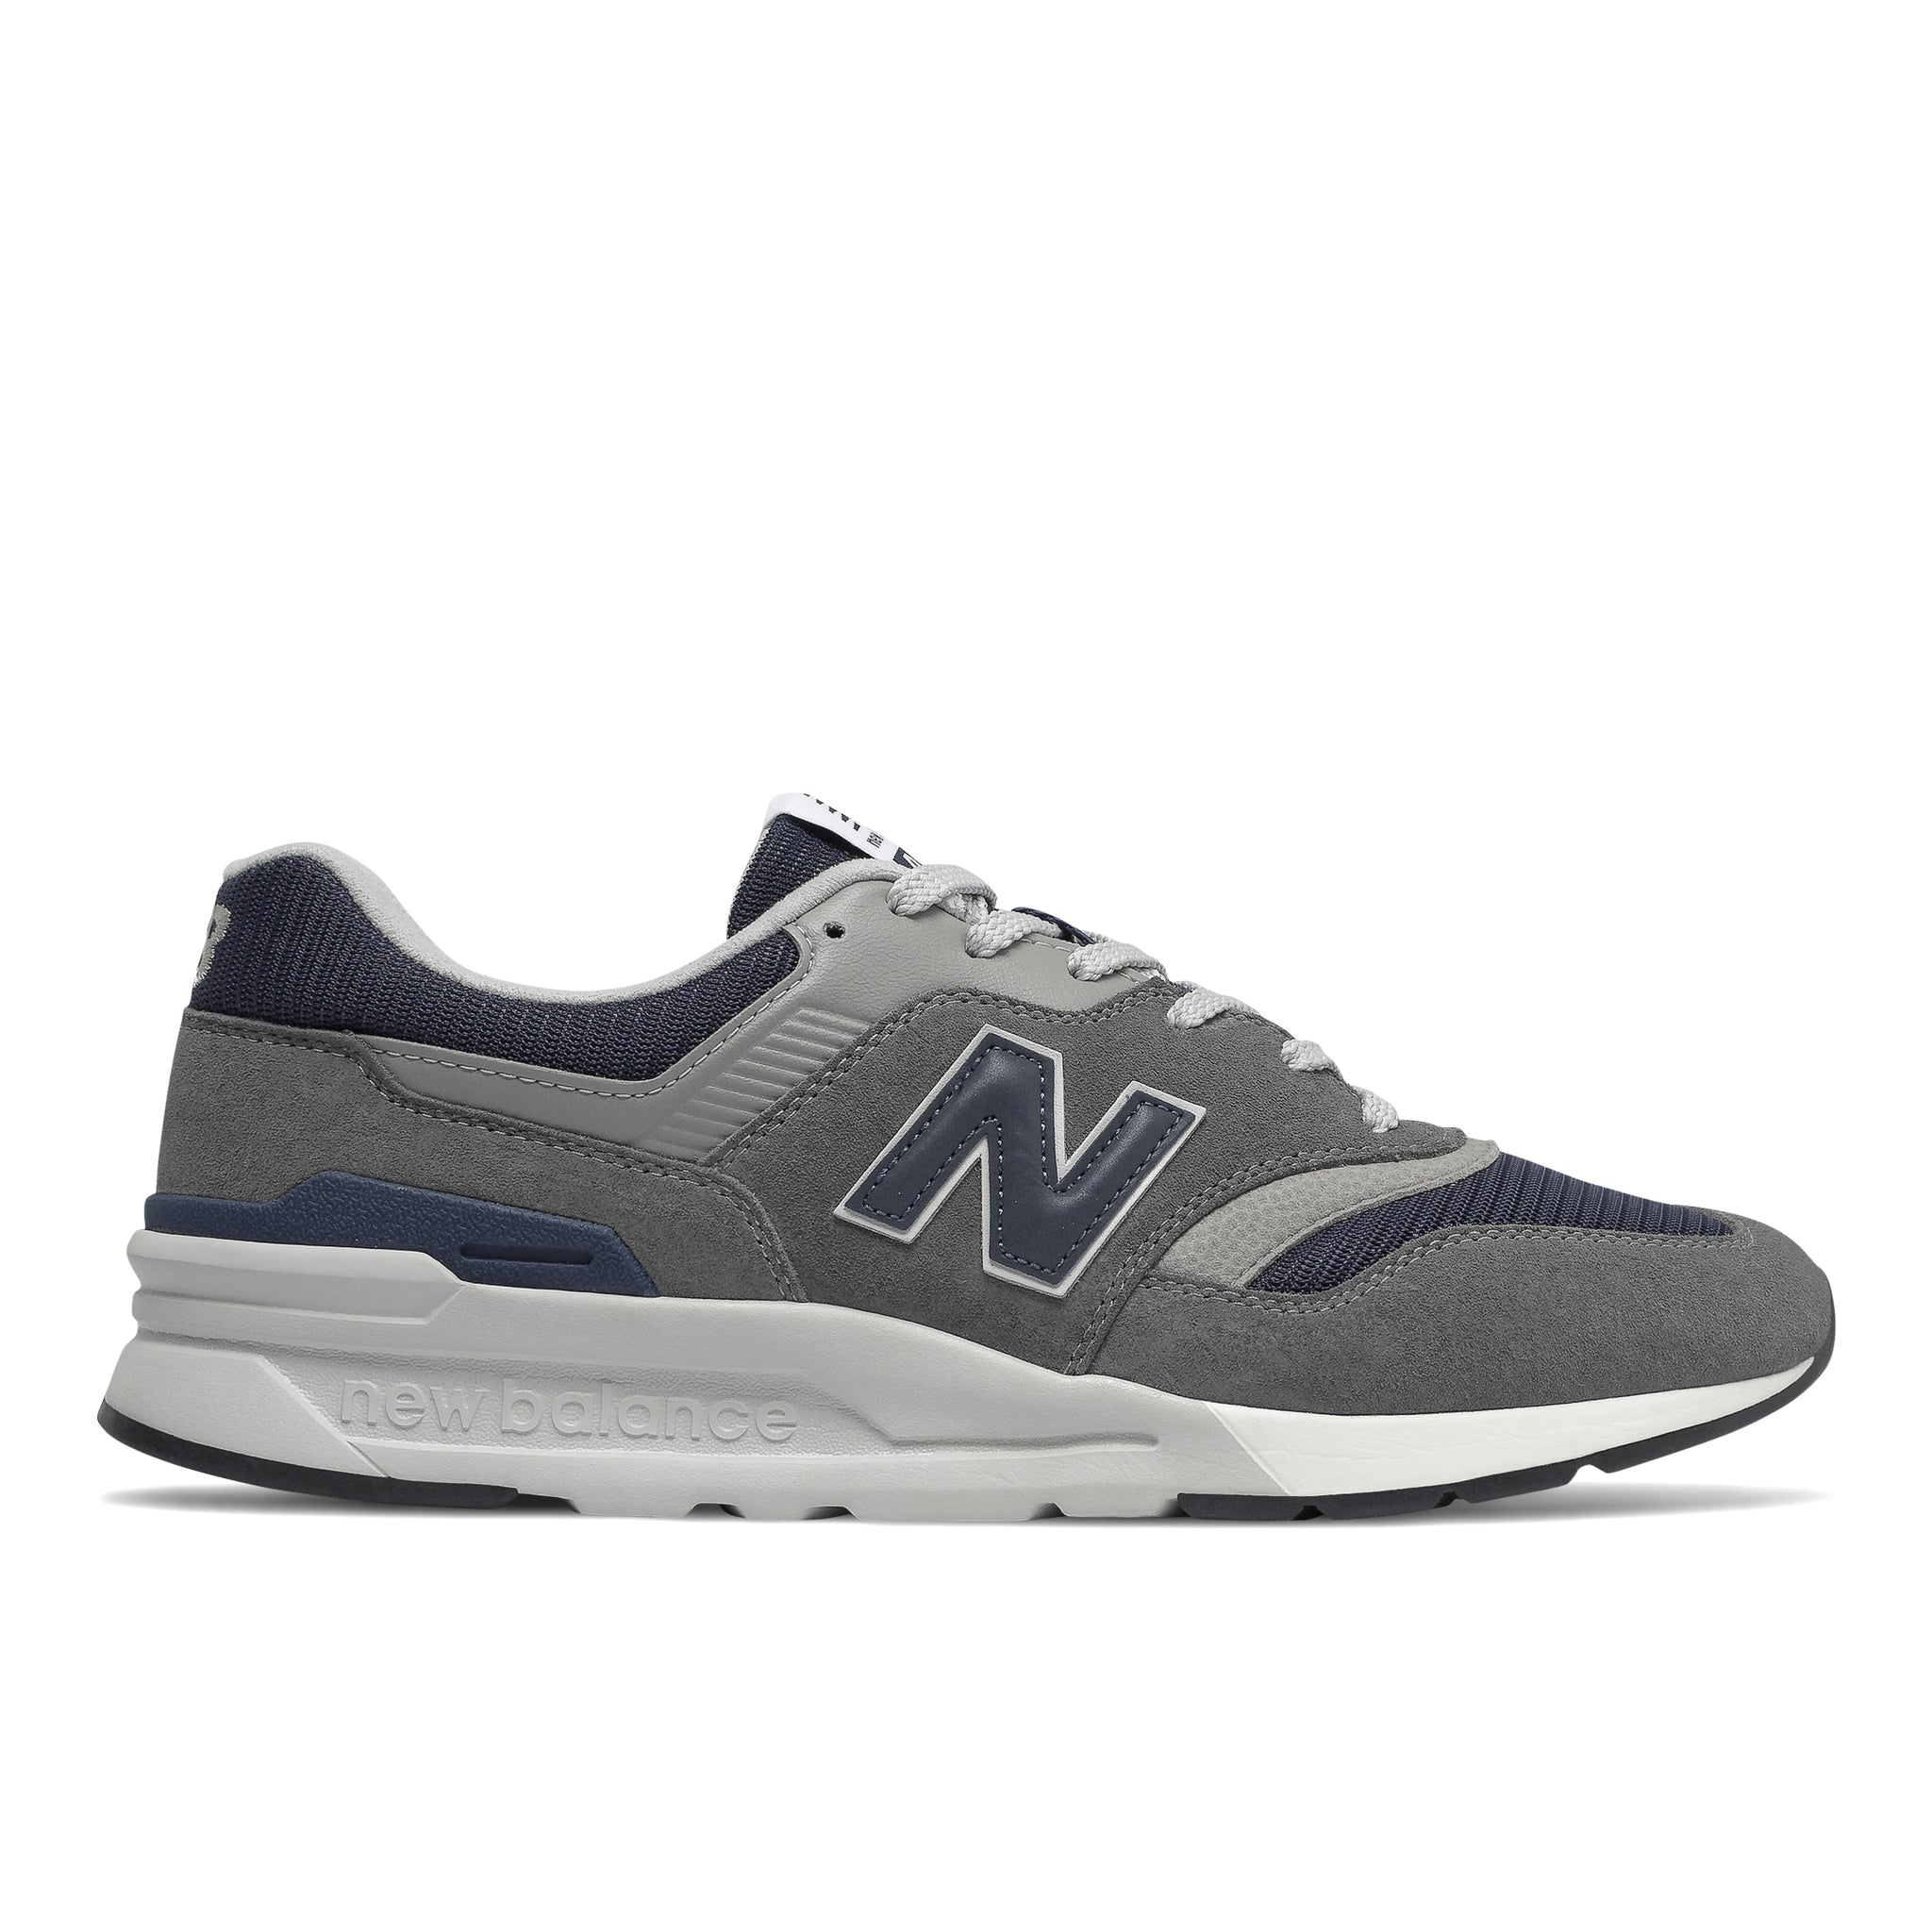 New Balance - CM997HAX, grey/navy